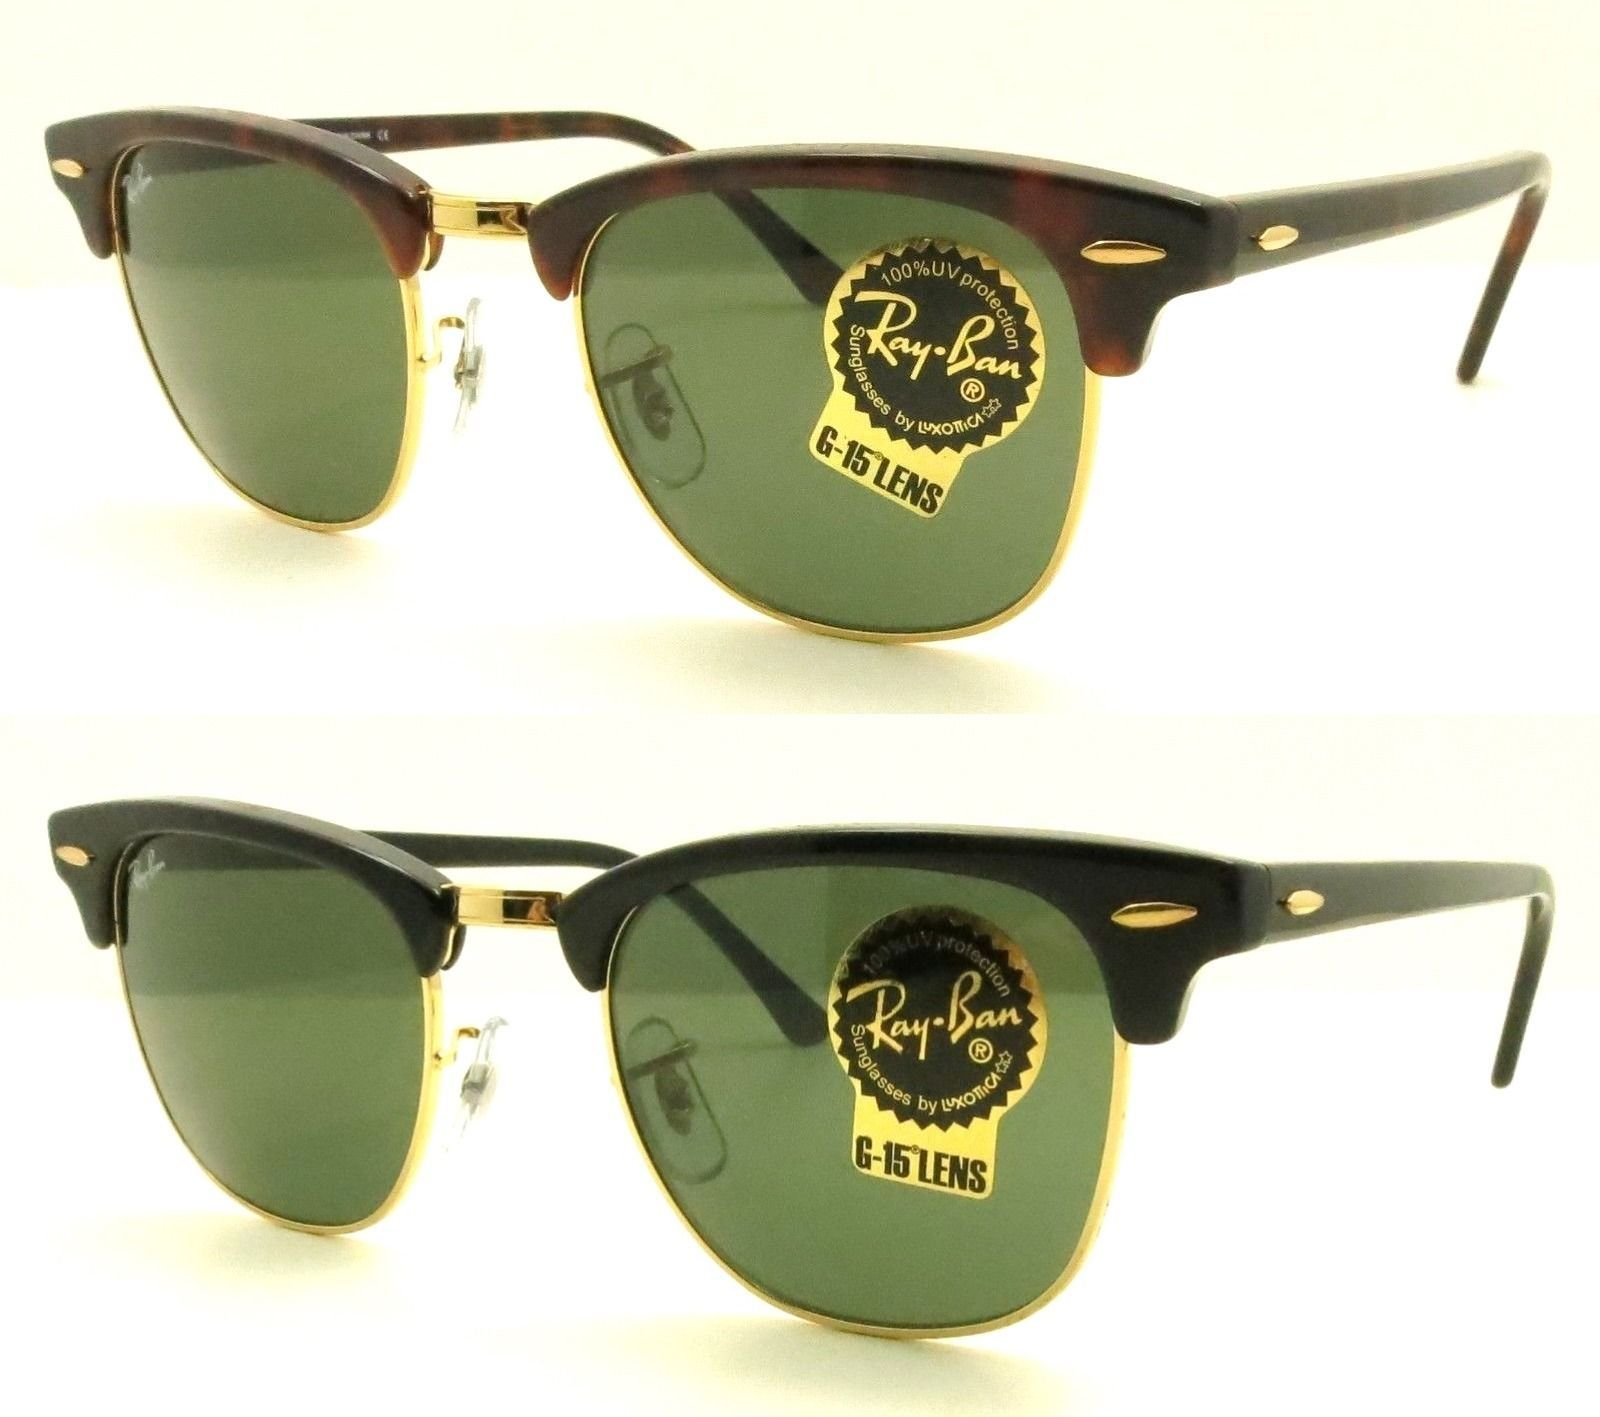 Ray Ban Clubmaster RB 3016 Authentic Sunglasses Buyer Picks Size ... eca4b53b4b